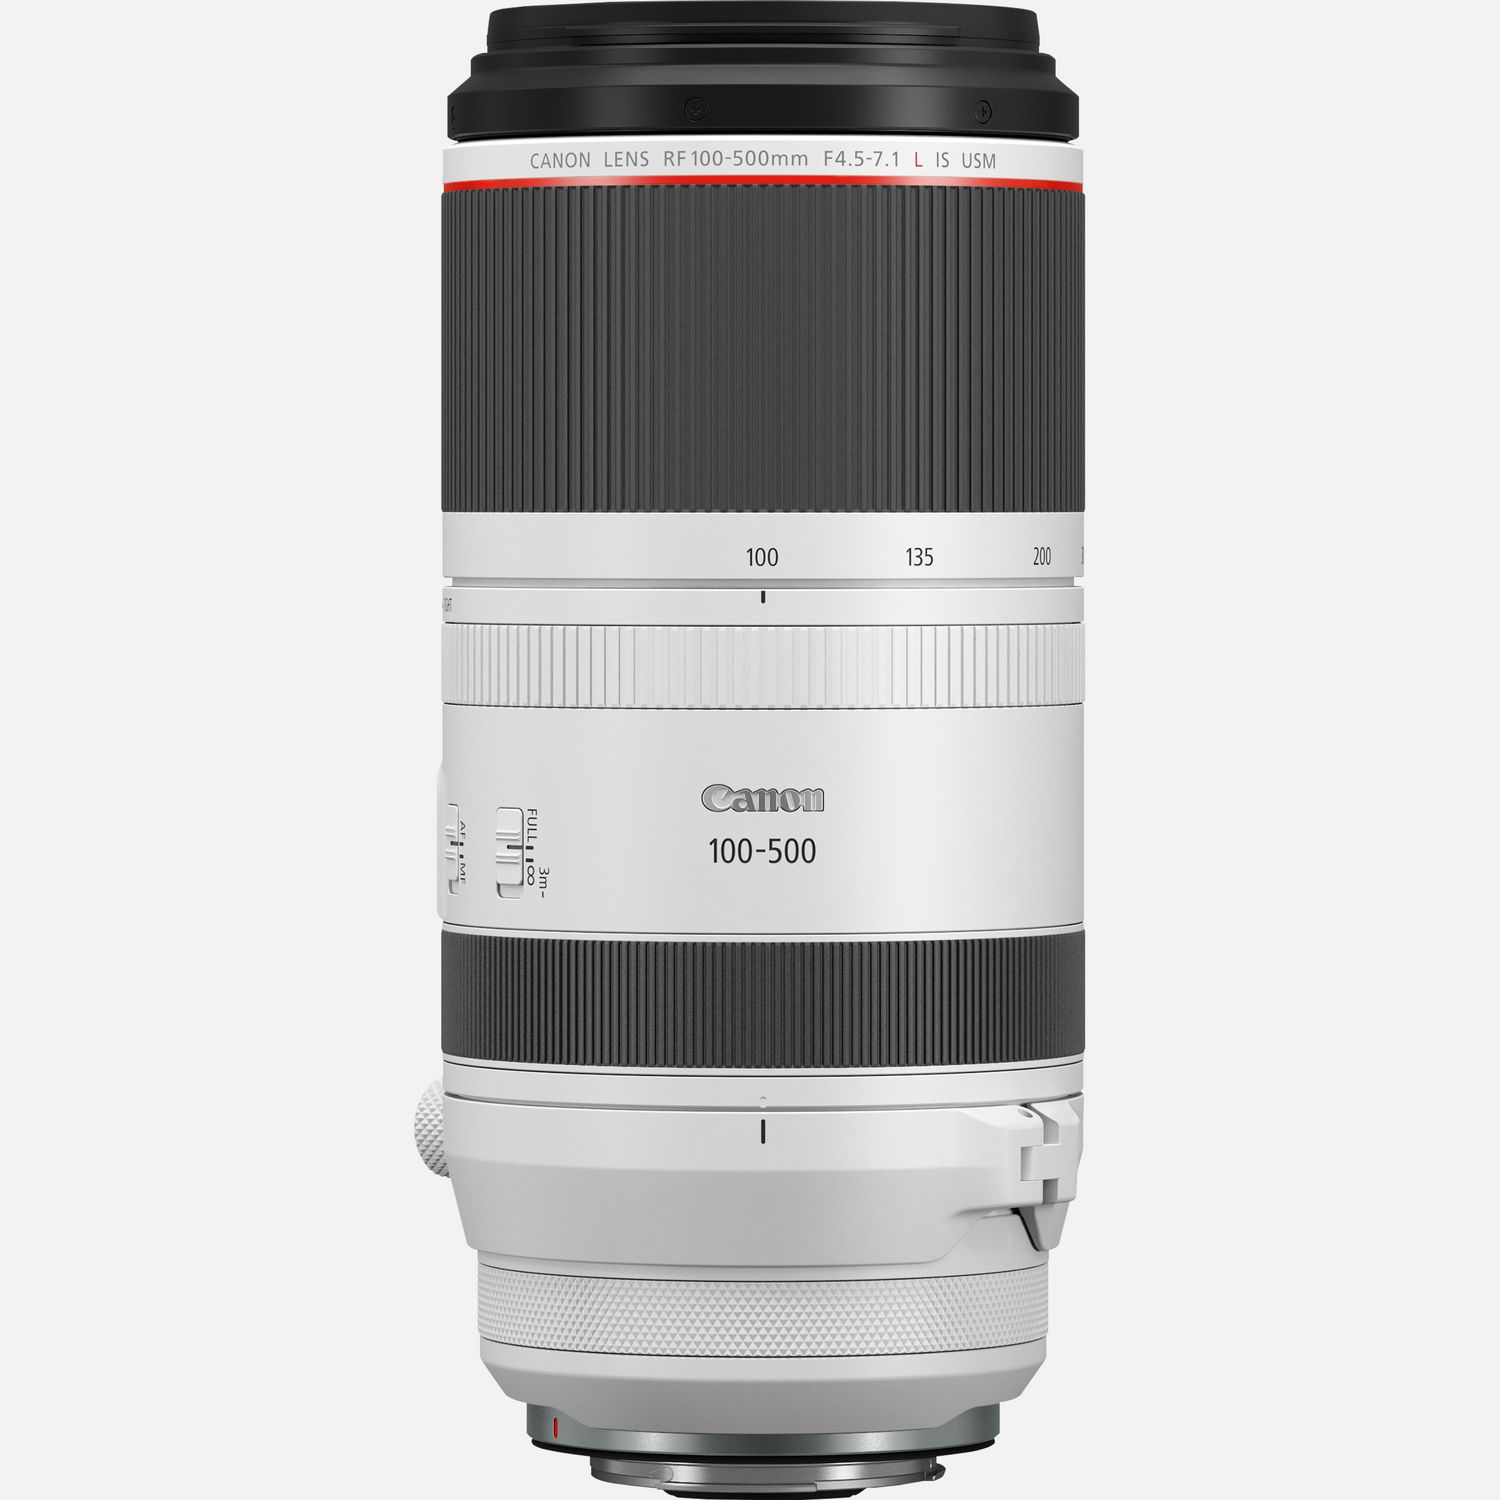 Canon RF 100 500mm F4.5 7.1L IS USM lens